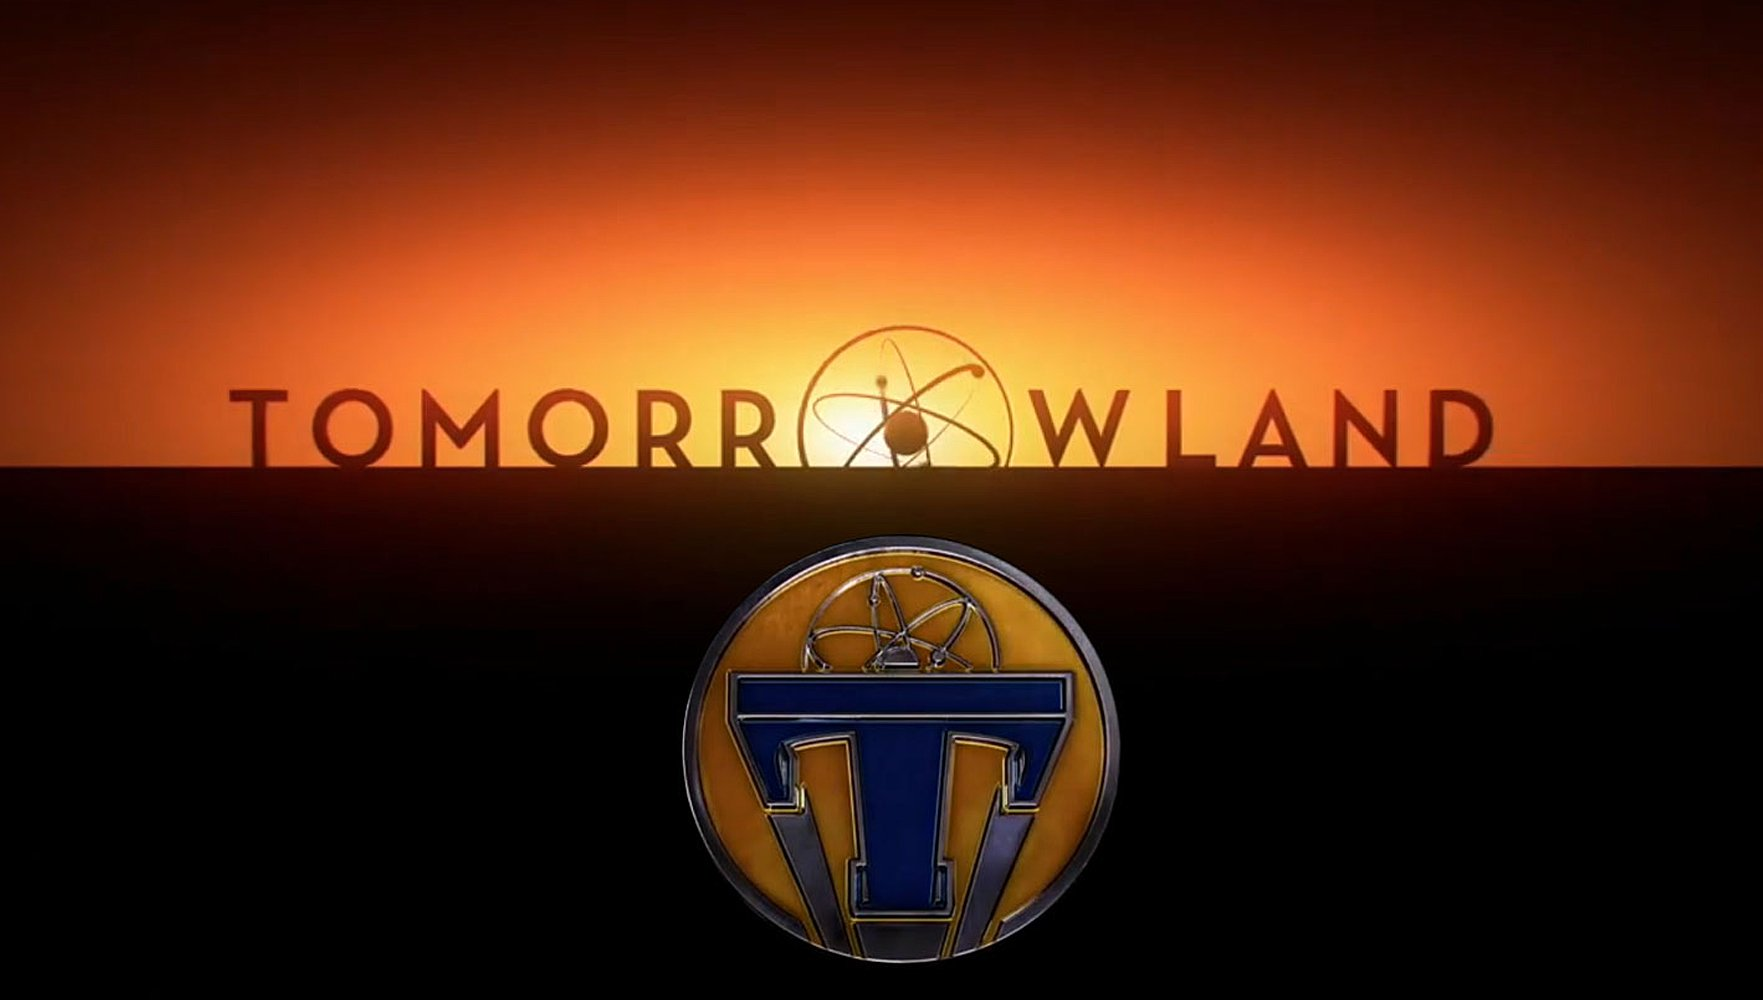 Tomorrowland - Critique du film de Brad Bird